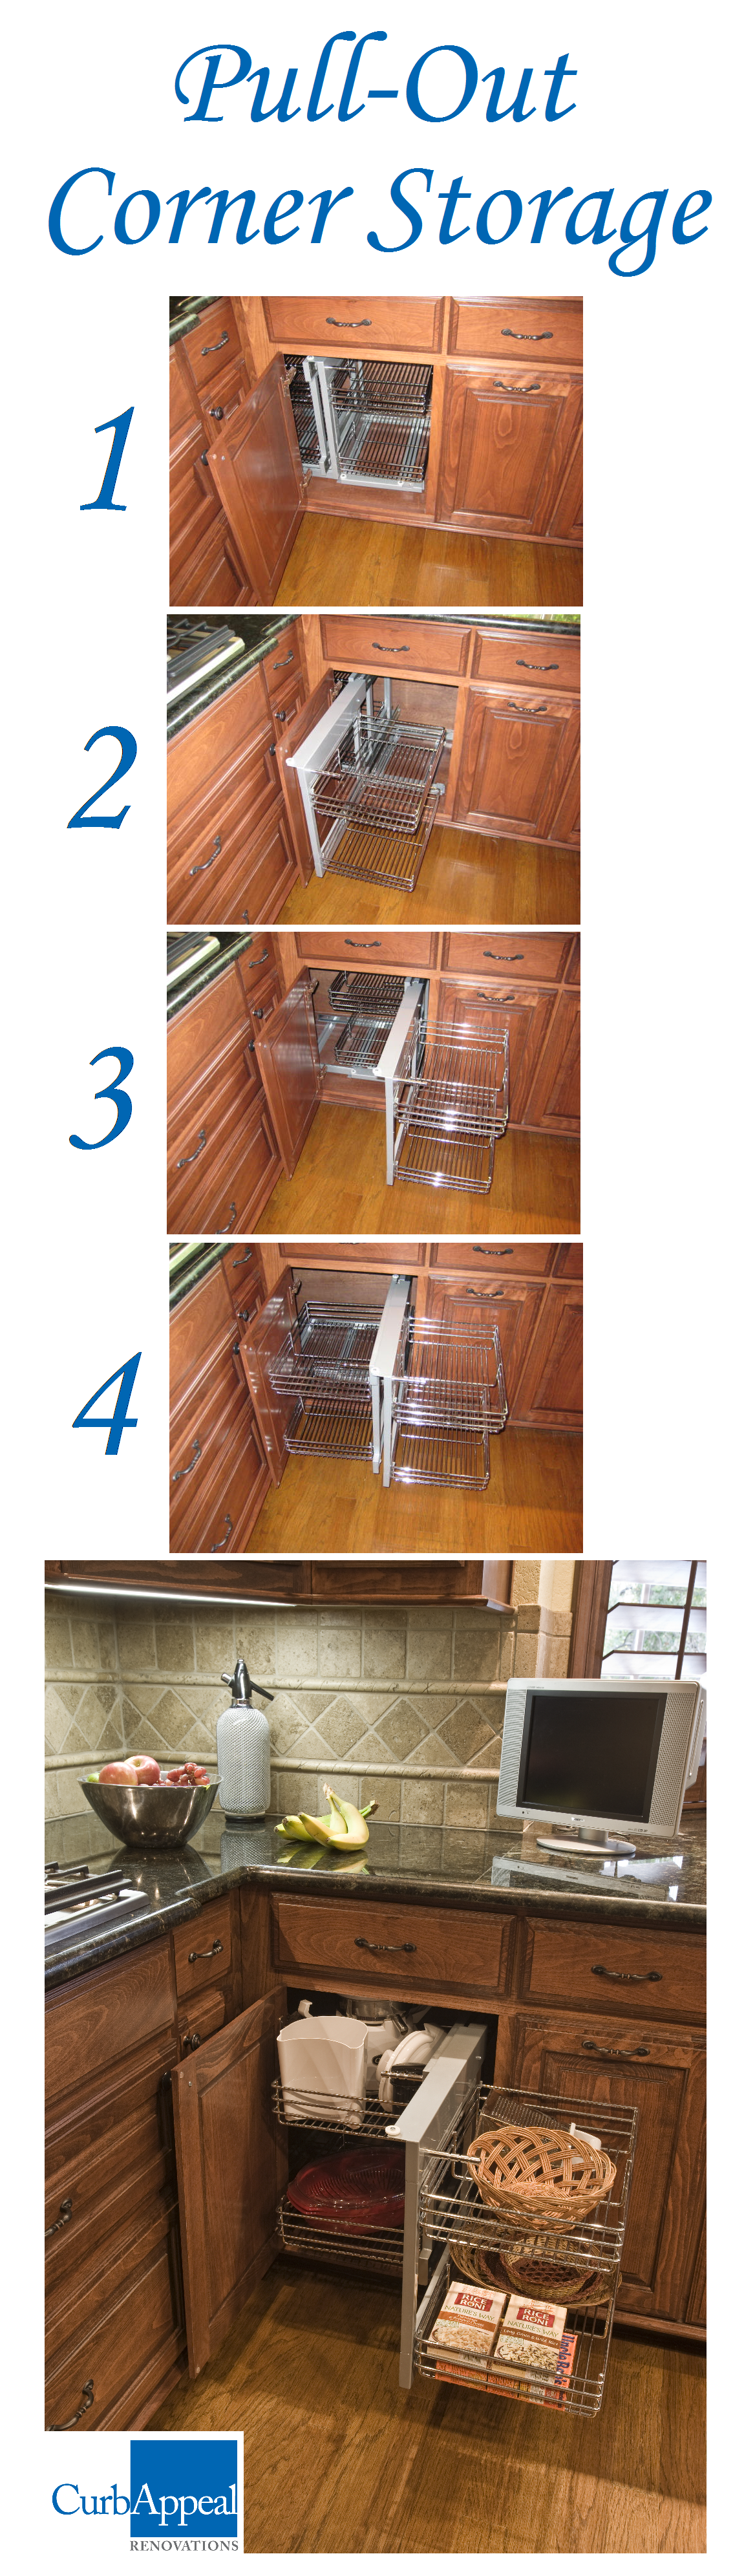 This corner storage shelving unit helps you maximize storage space